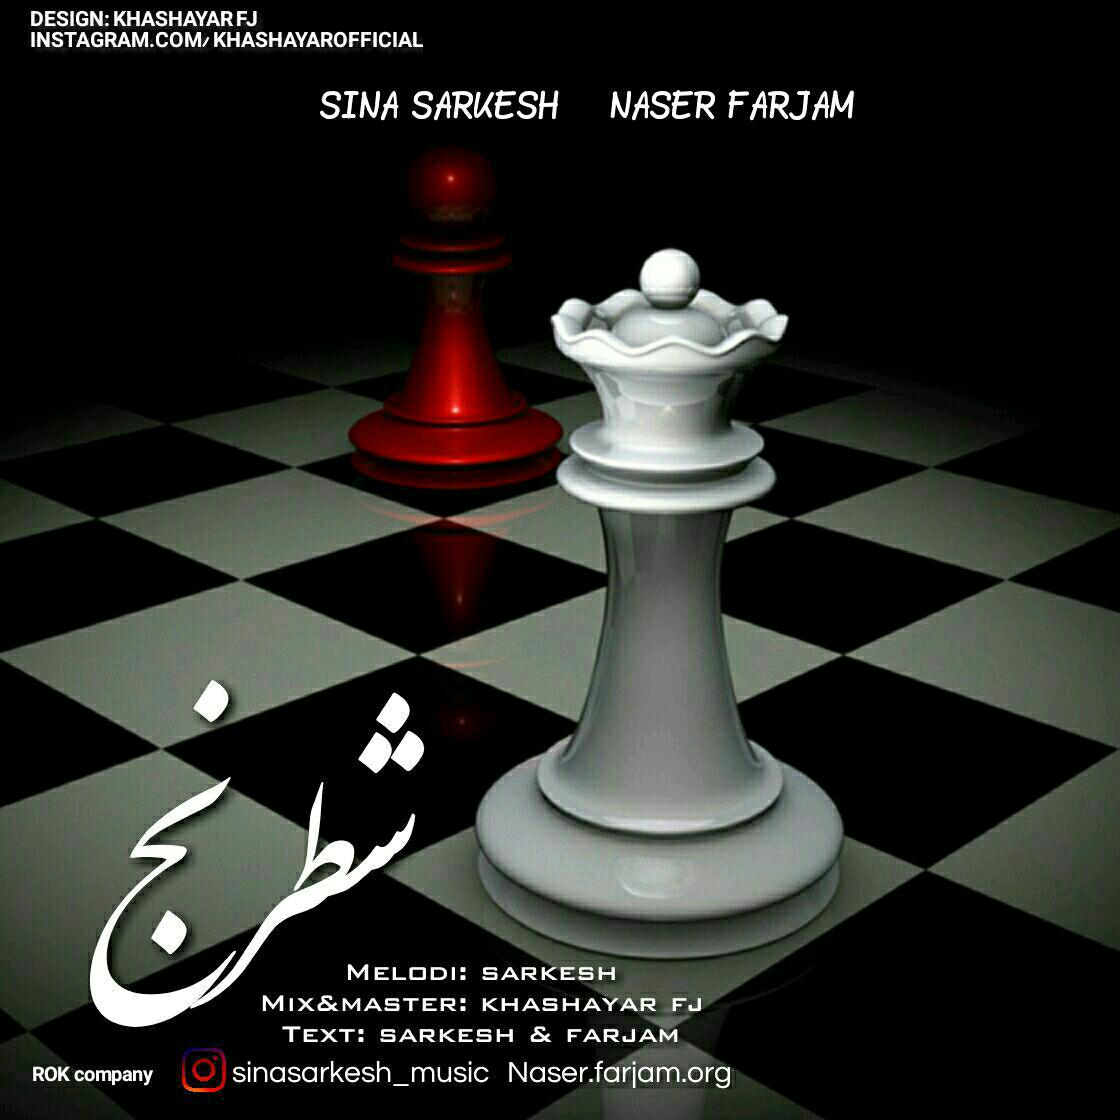 Sina Sarkesh Ft Naser Farjam – Shatranj